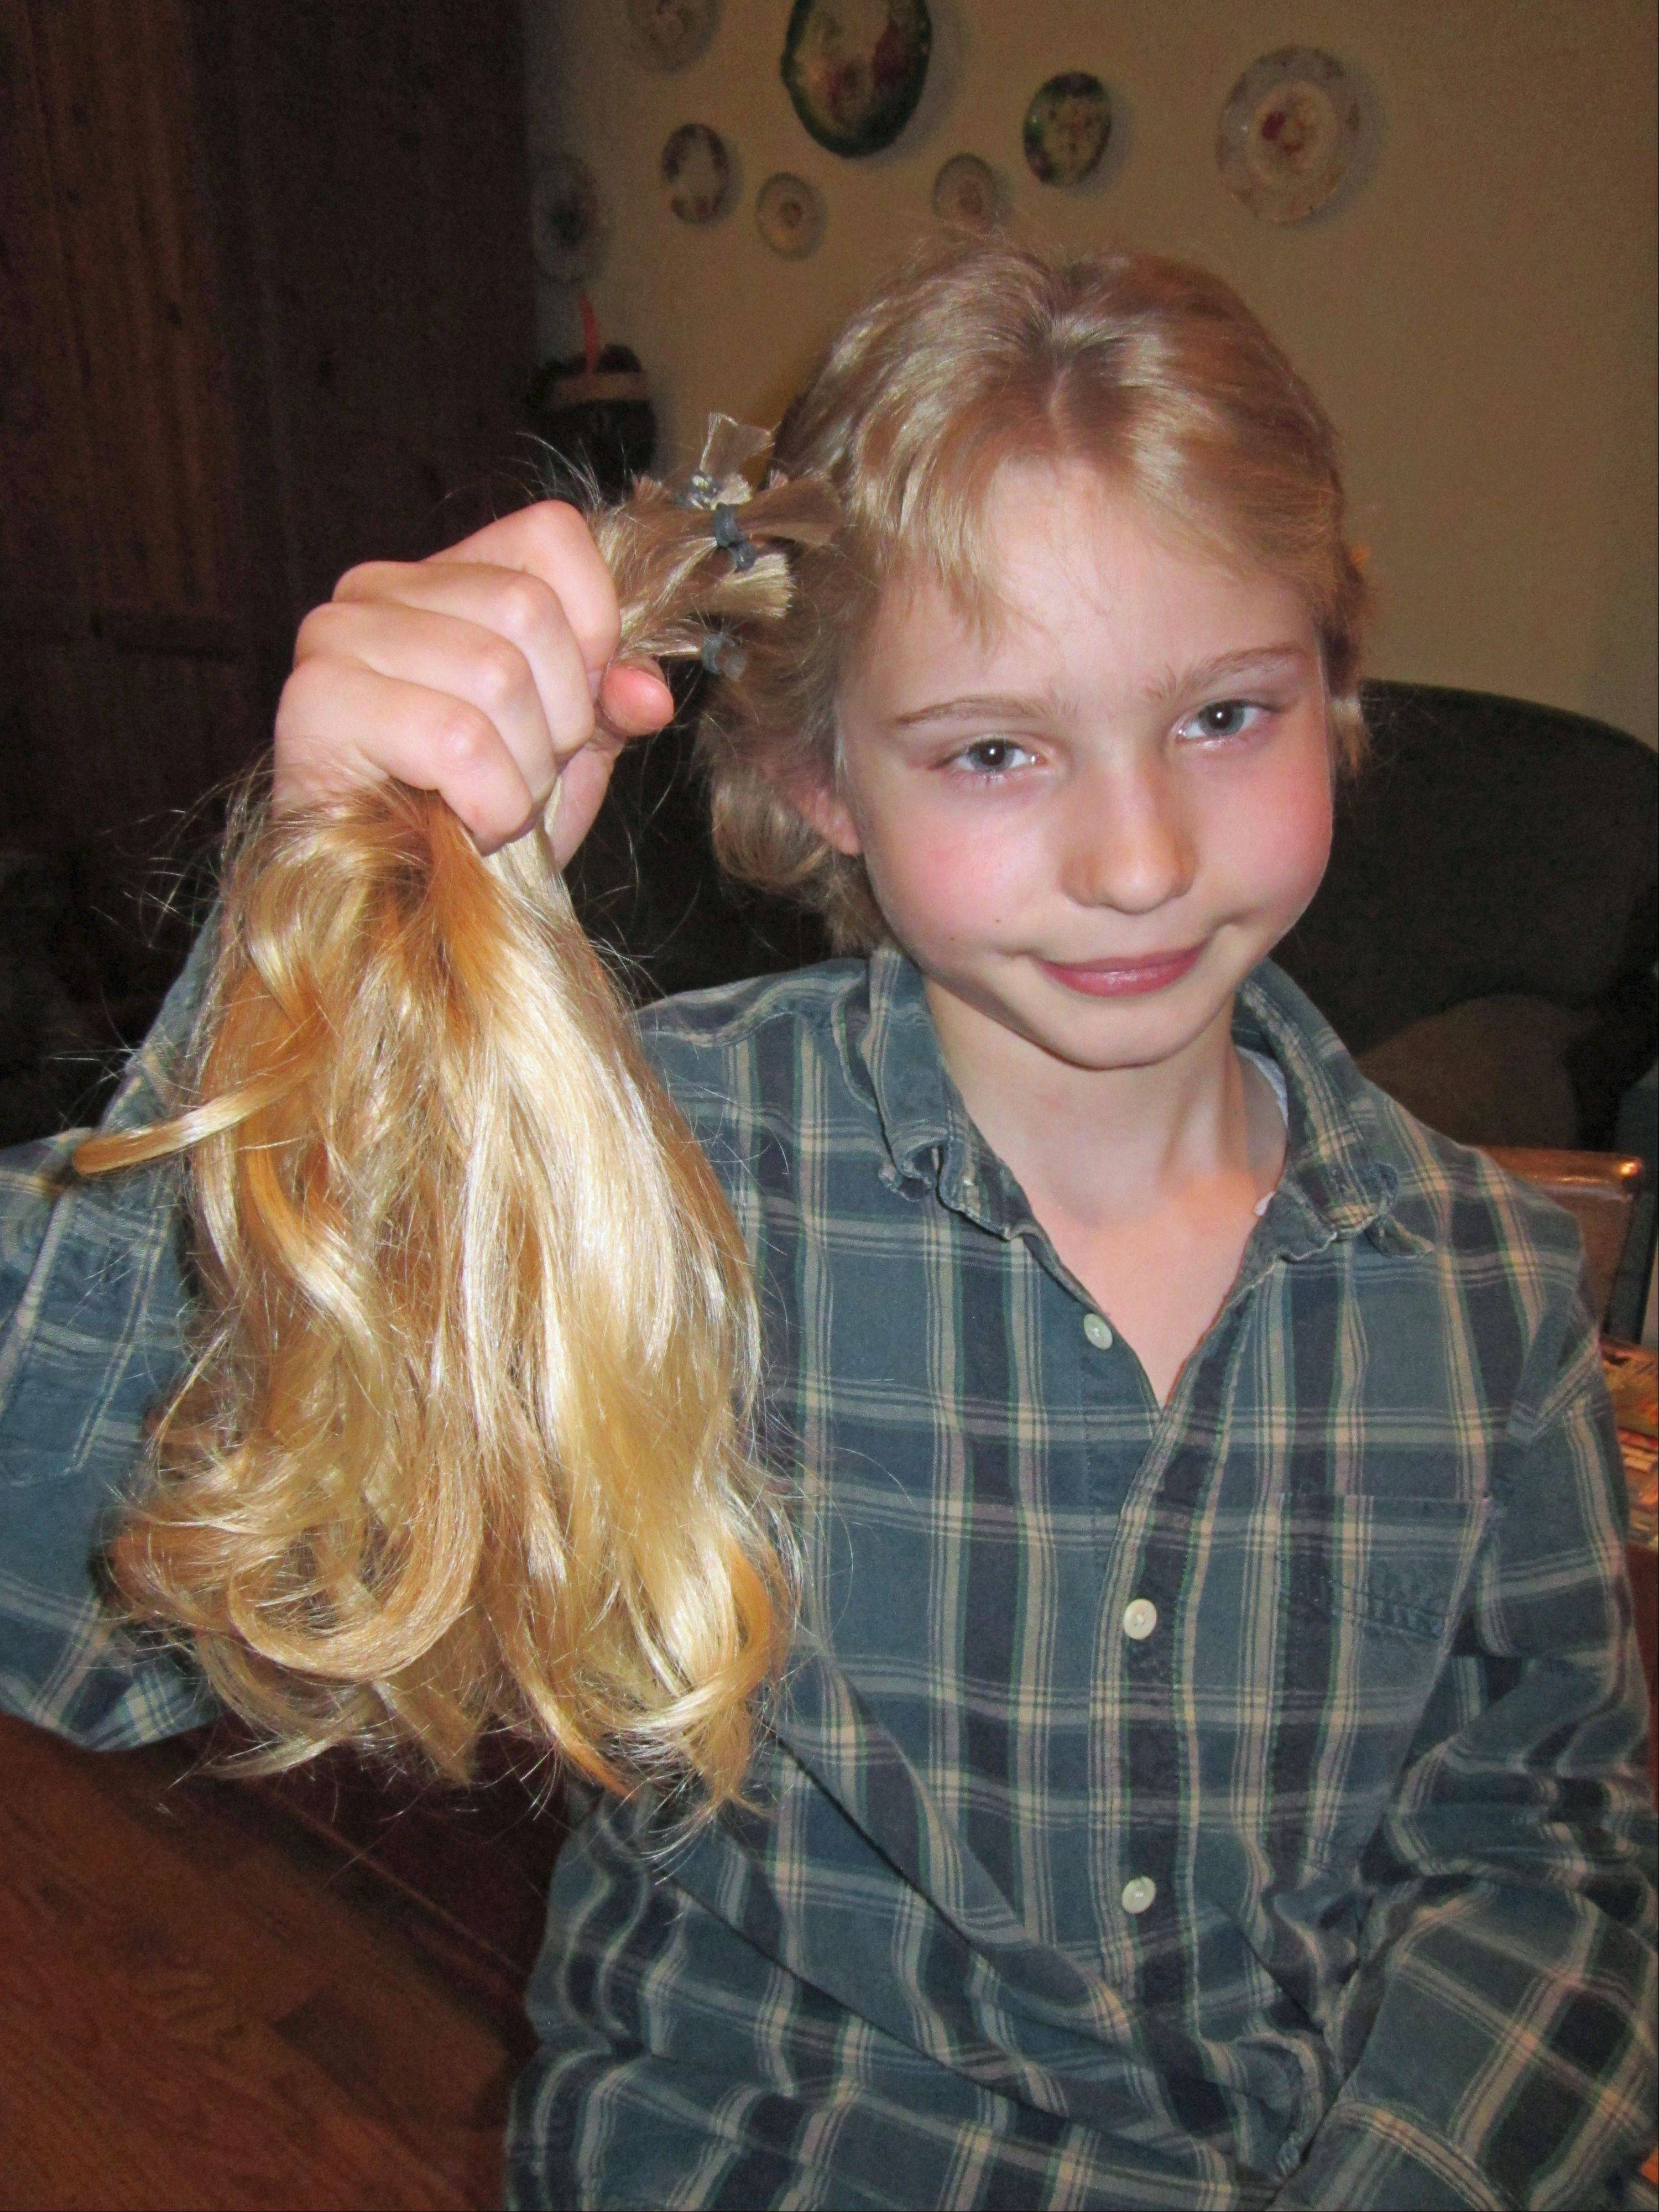 Calvin Moses, 10, grew his hair long and recently donated 12 inches to Locks of Love to make a wig for a sick child.